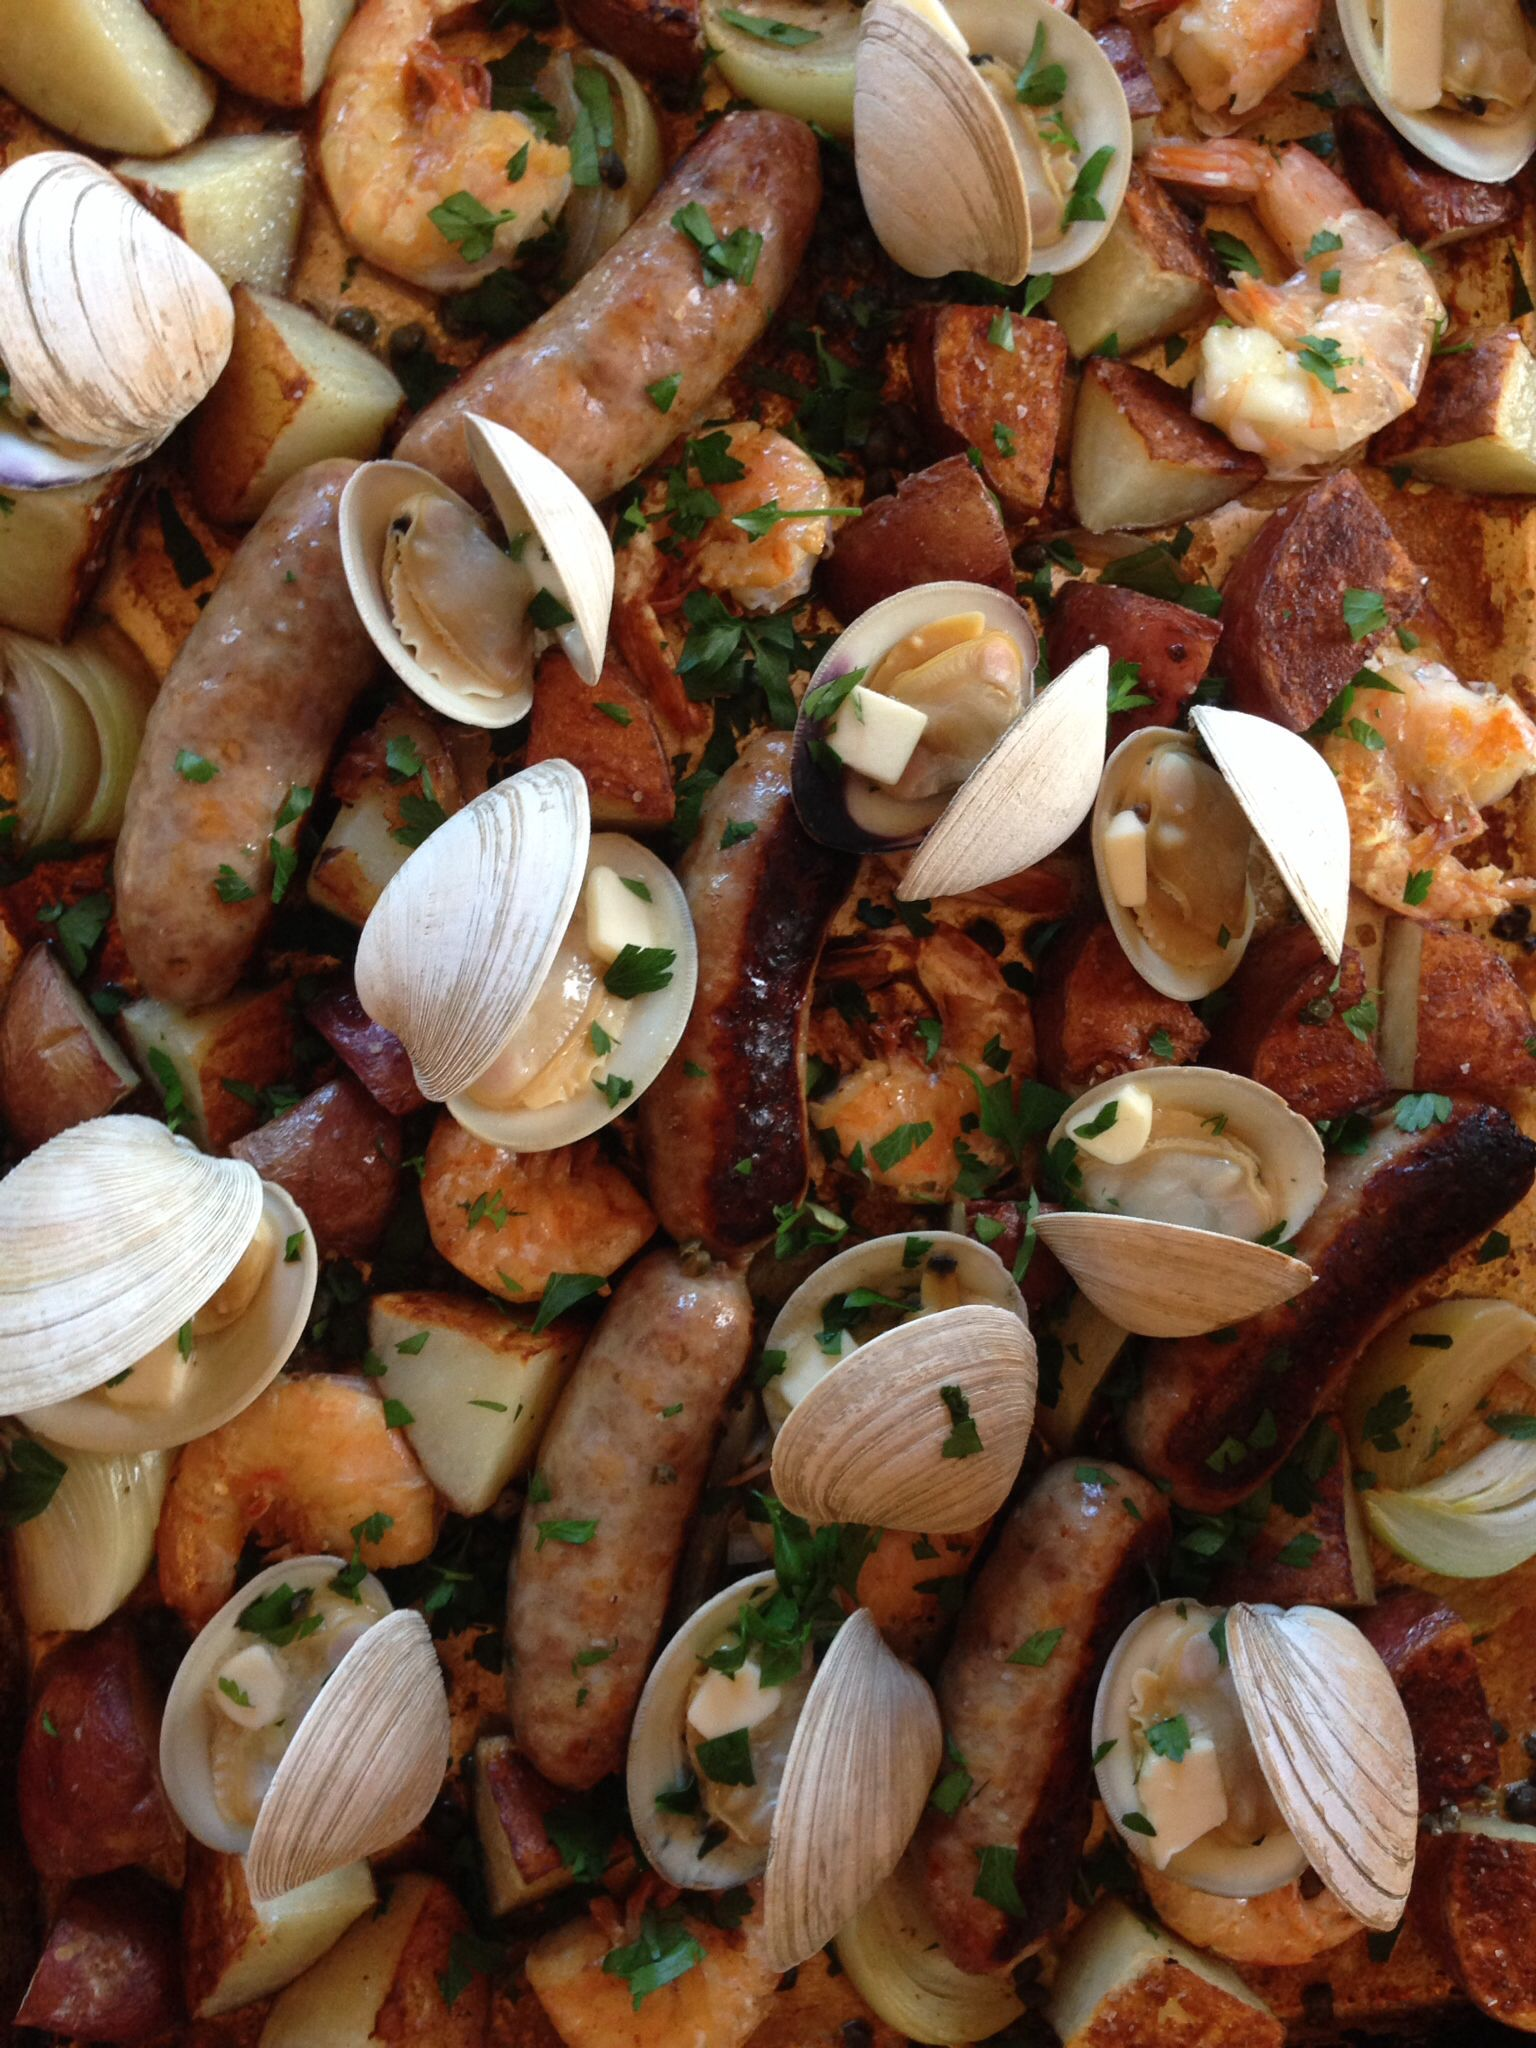 Sheet Tray Clam Bake. #wecallitsupper #vtfood #vtwedding #foodwriting #villageroots  www.villagerootsvt.com